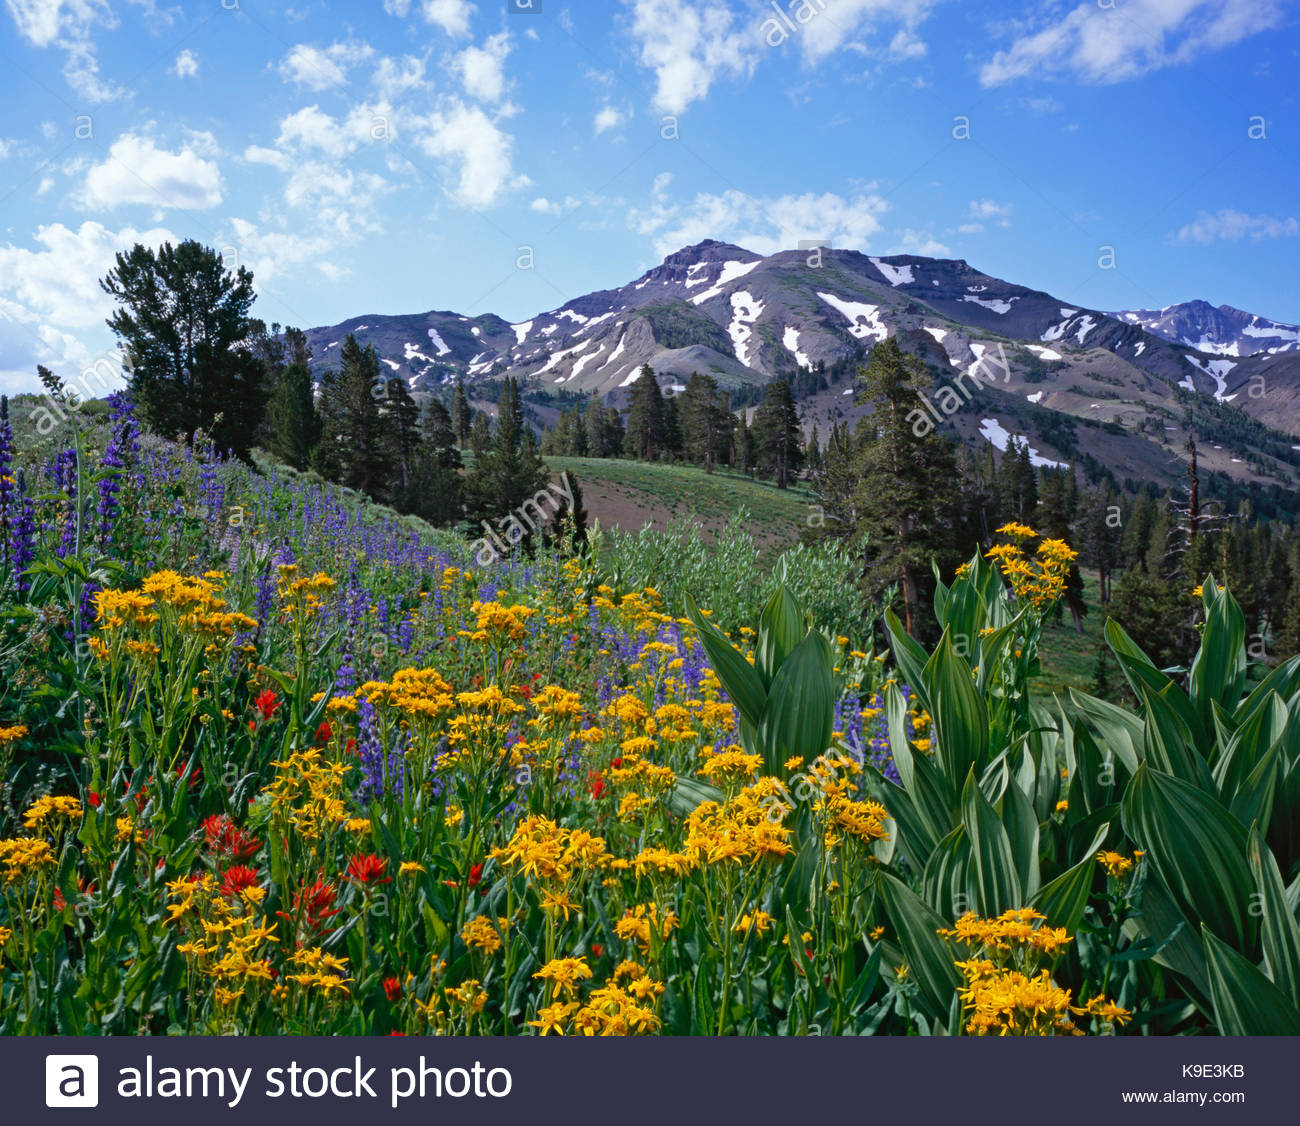 Lupine, Paintbrush, Groundsel and Corn Lily, Stanislaus National Forest, California - Stock Image